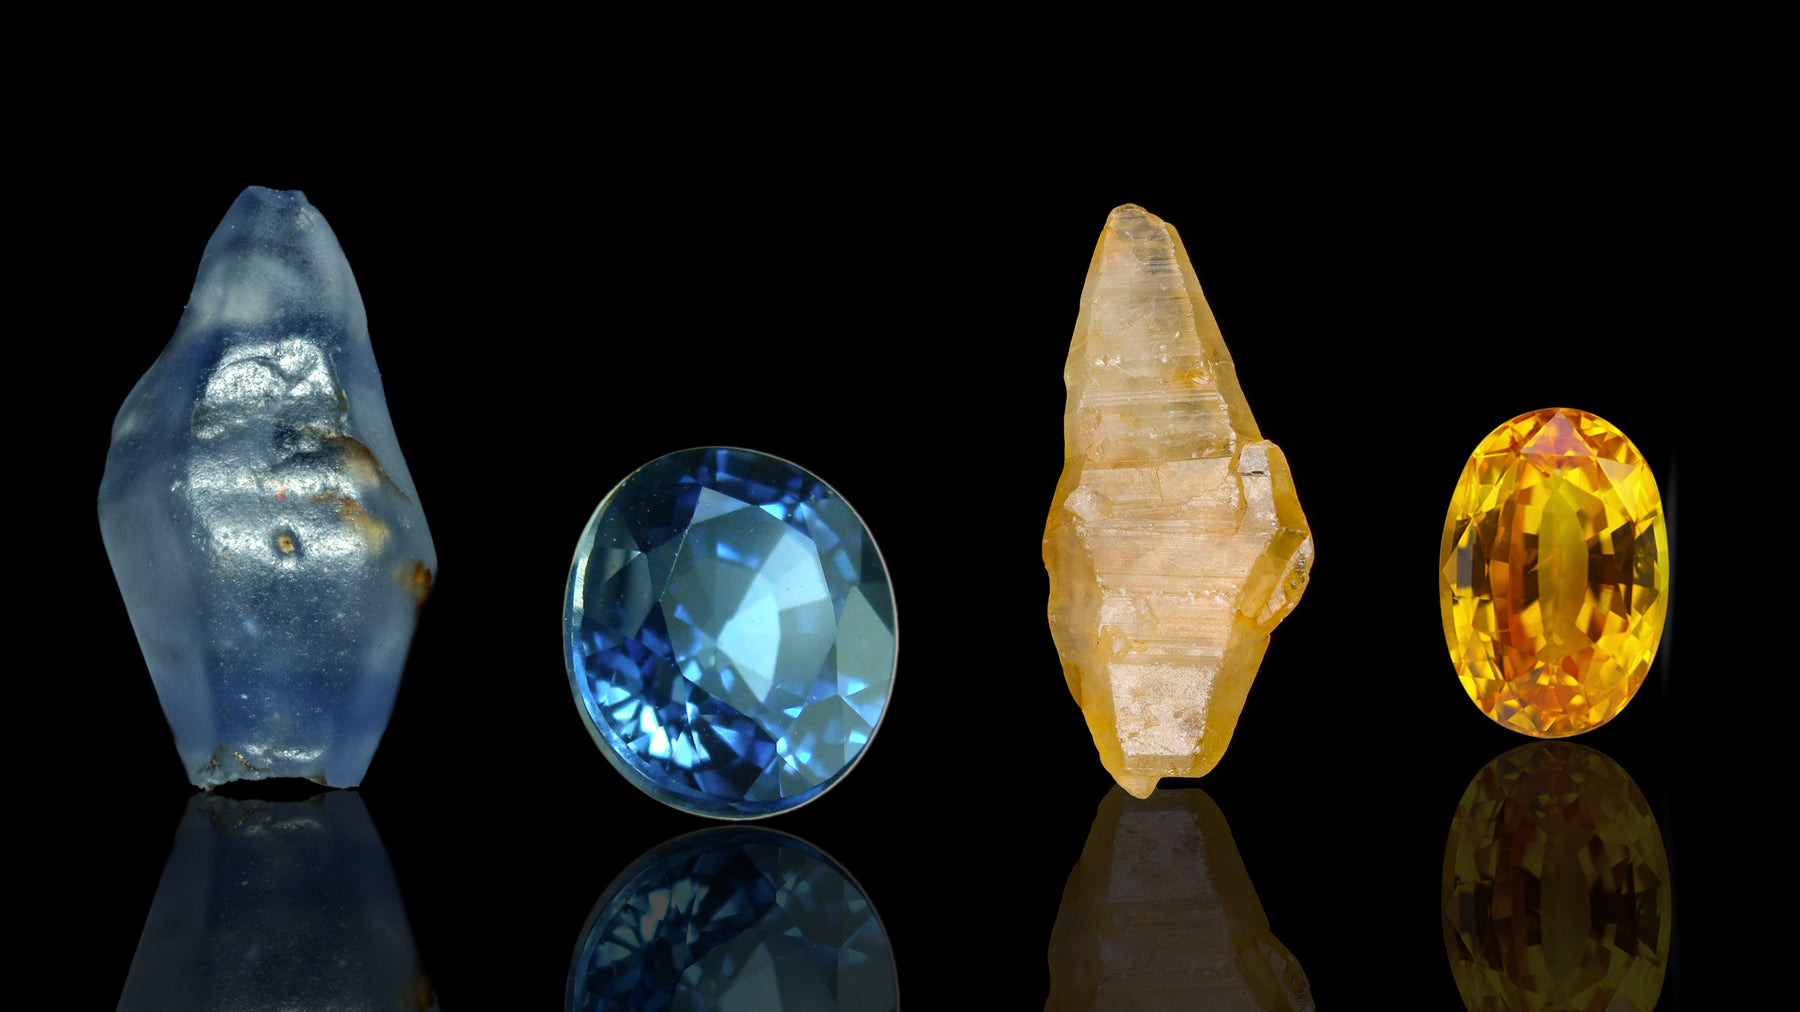 Sapphire crystal gemstone healing and energetic properties and meaning